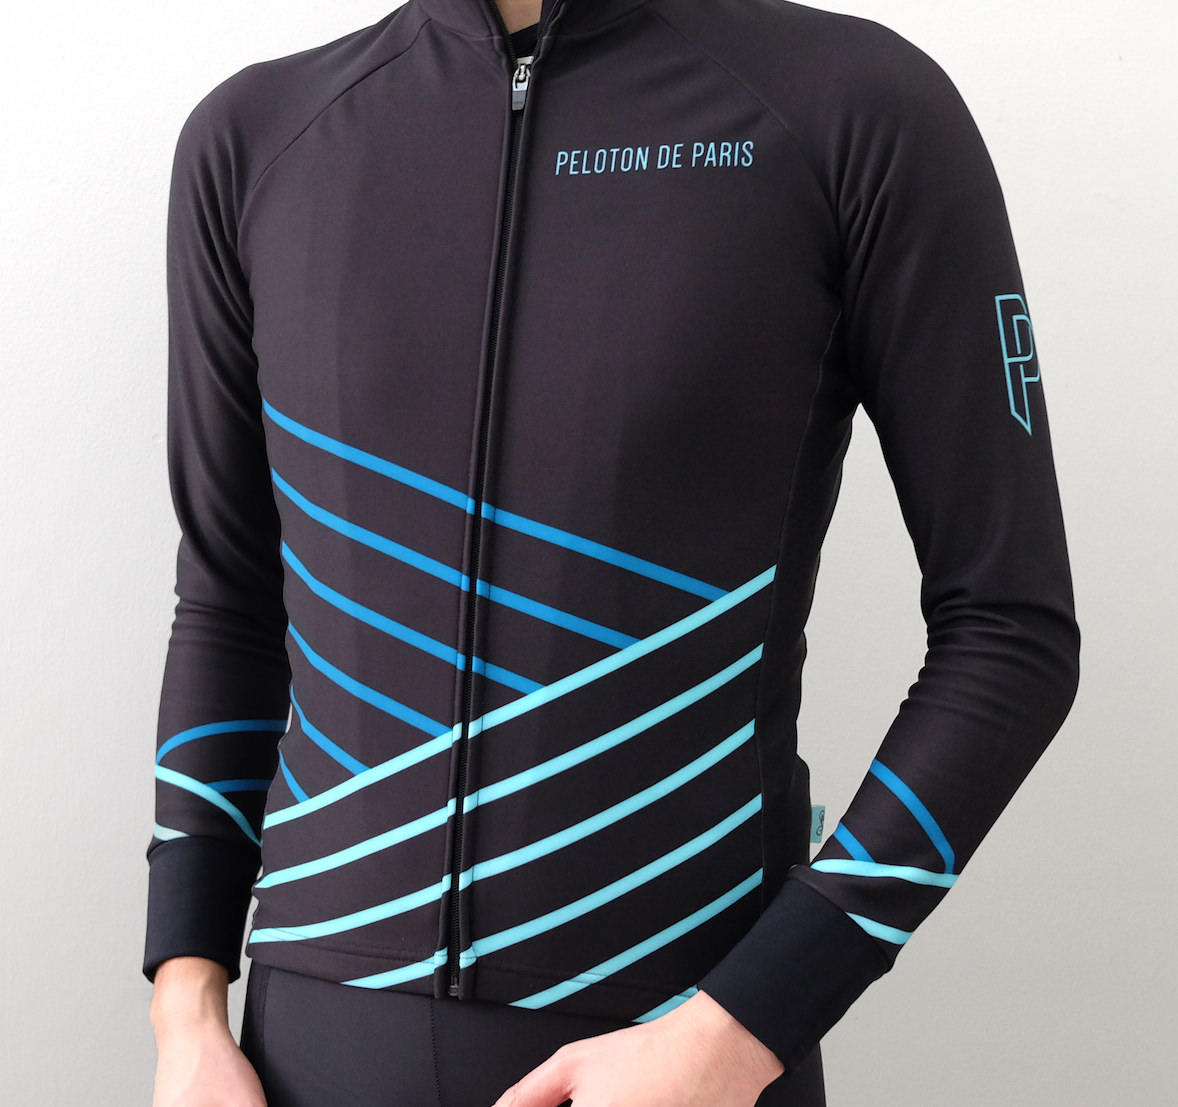 Switchback Jersey 前面着用イメージ